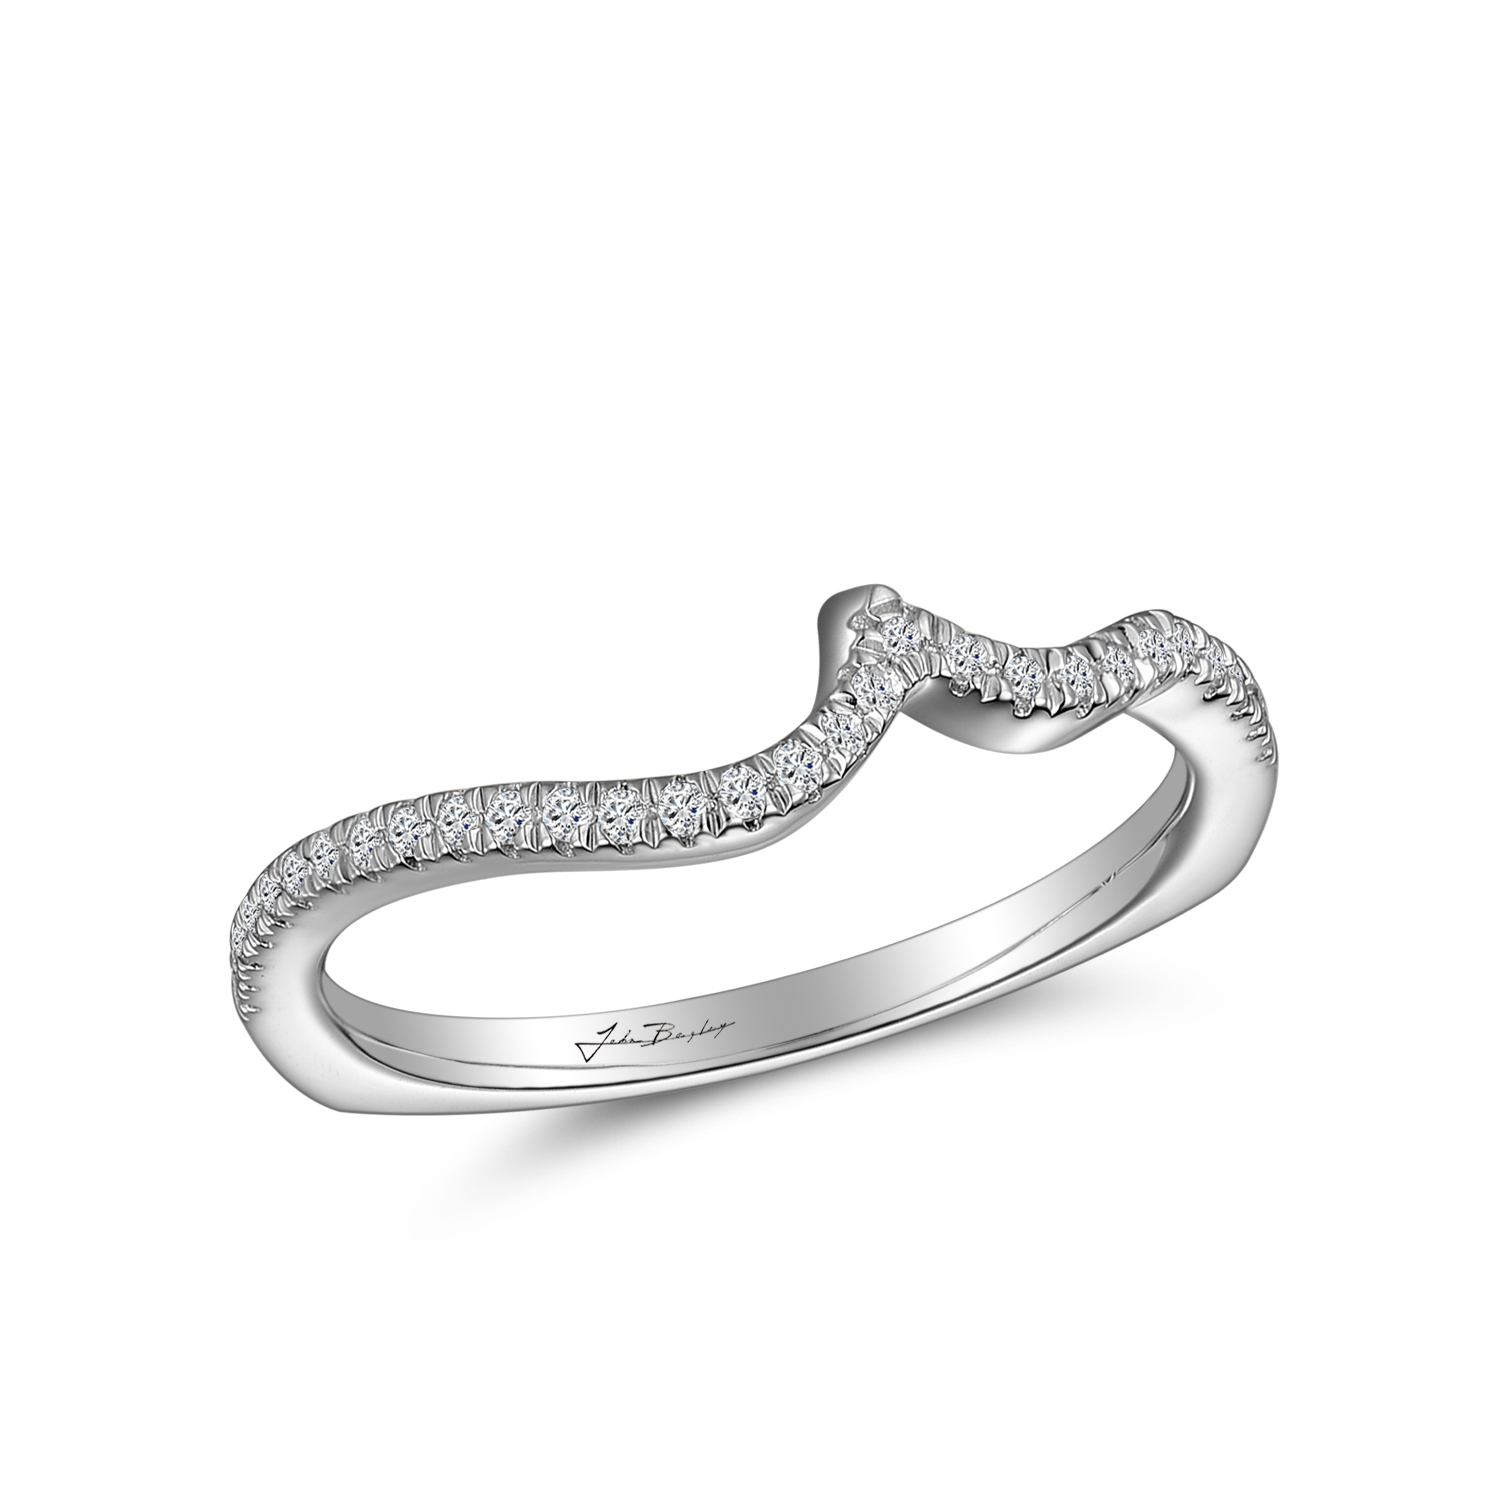 JB Signature  Wedding Band